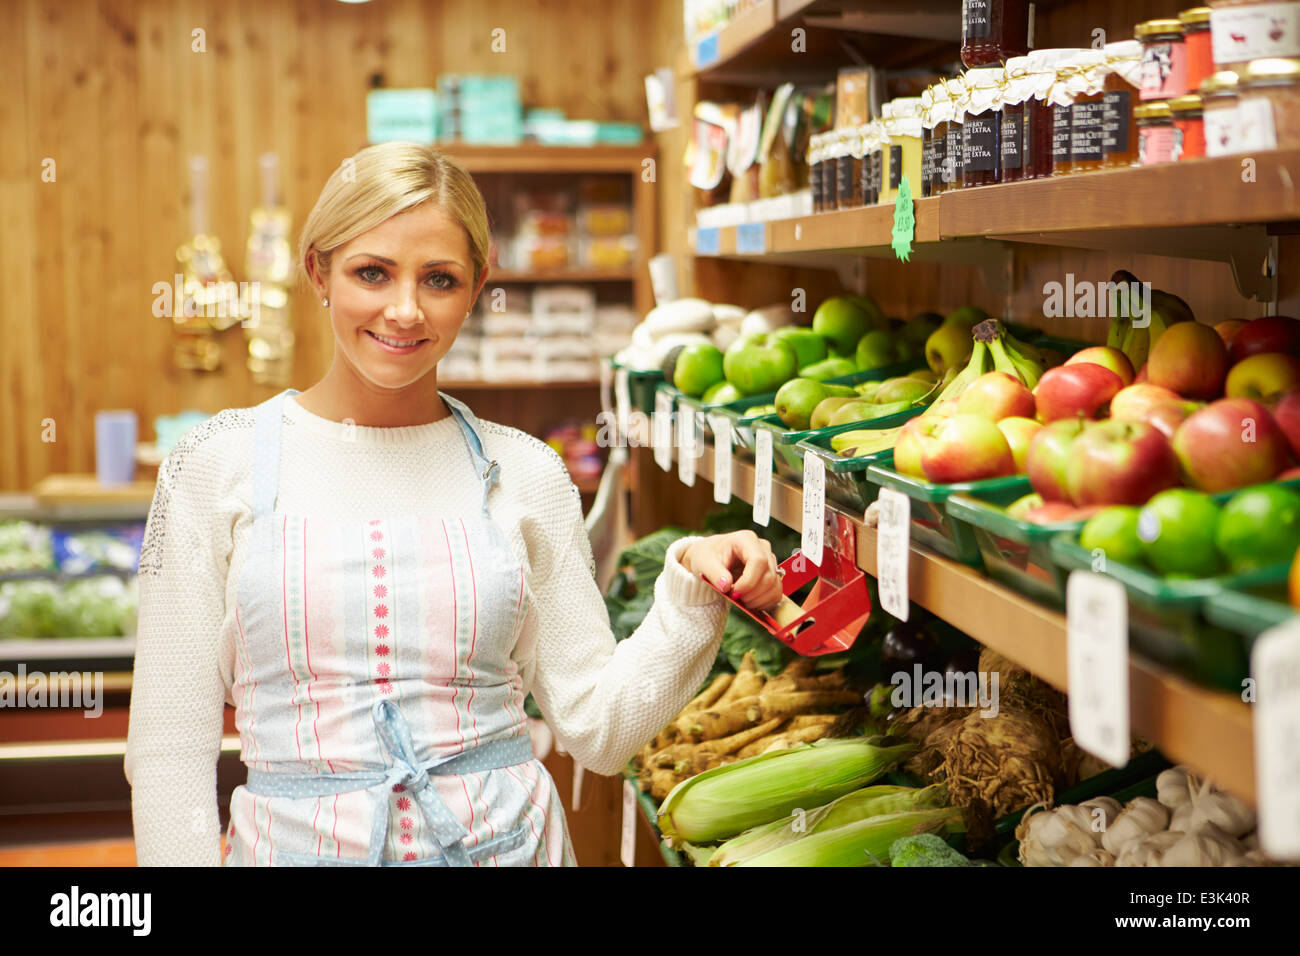 Female Sales Assistant At Vegetable Counter Of Farm Shop - Stock Image